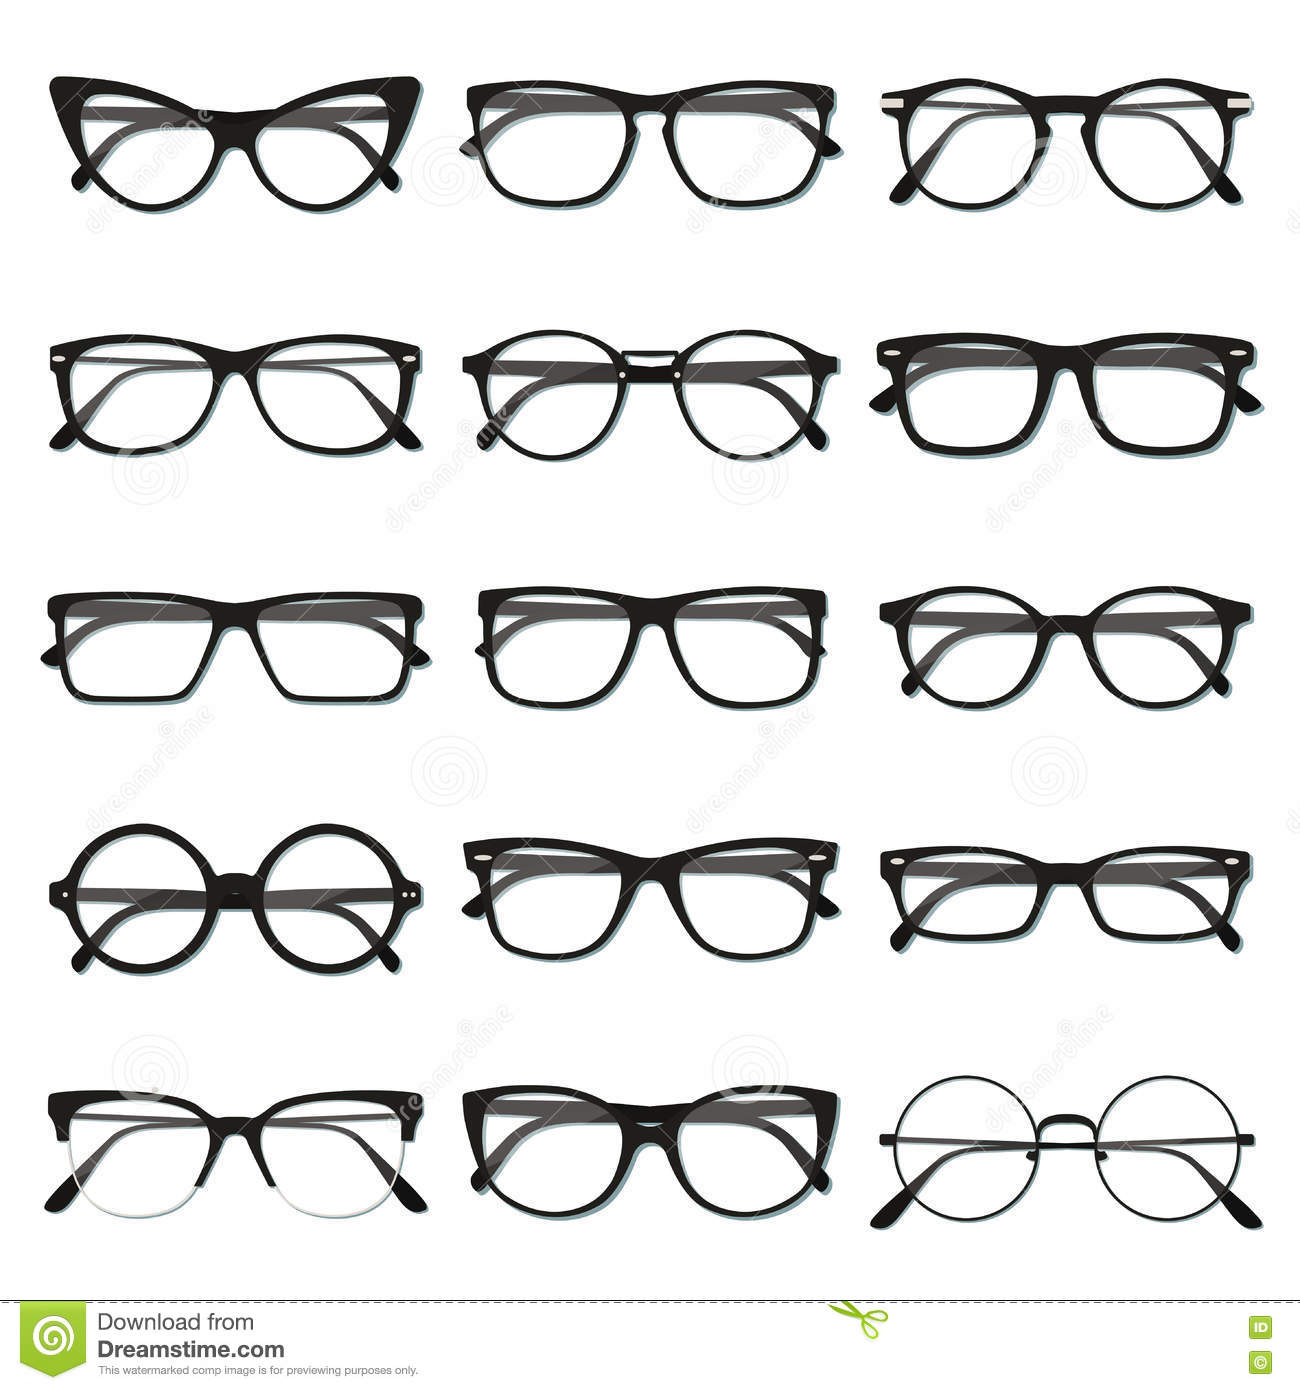 Glasses frame set stock vector. Illustration of glasses - 81978855